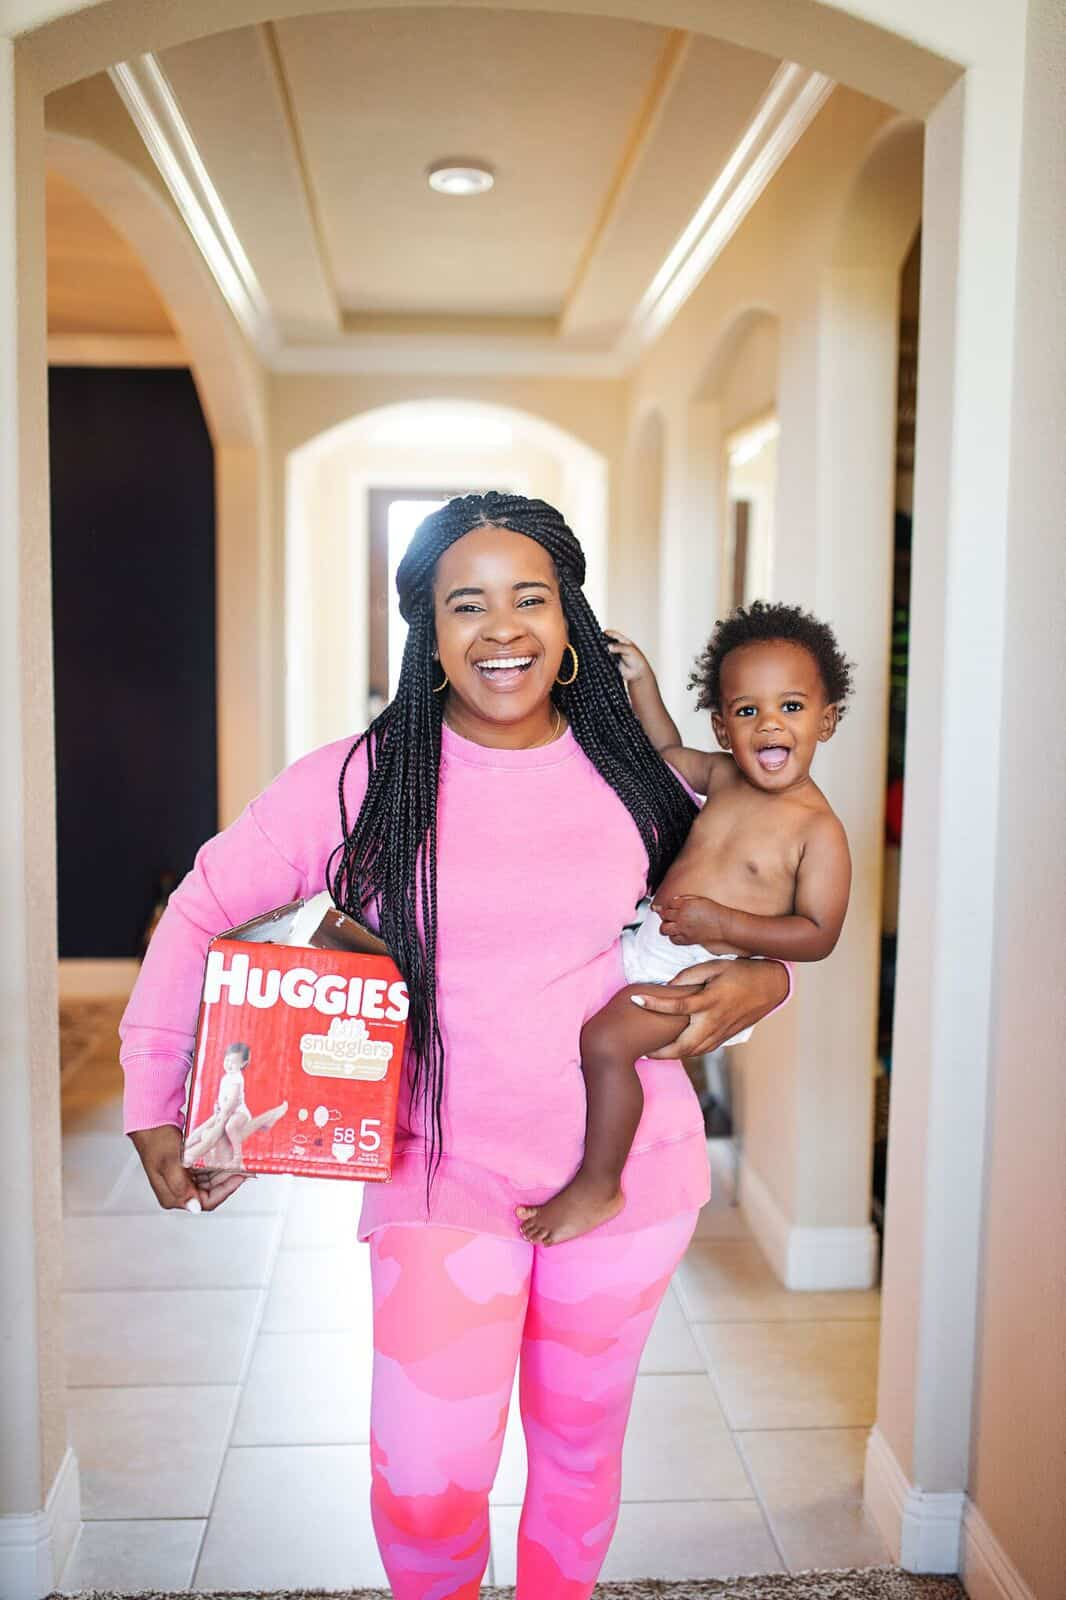 Basic Toddler Essentials by popular life and style blog, Glamorous Versatility: image of a woman holding a box of Huggies diapers and her baby.